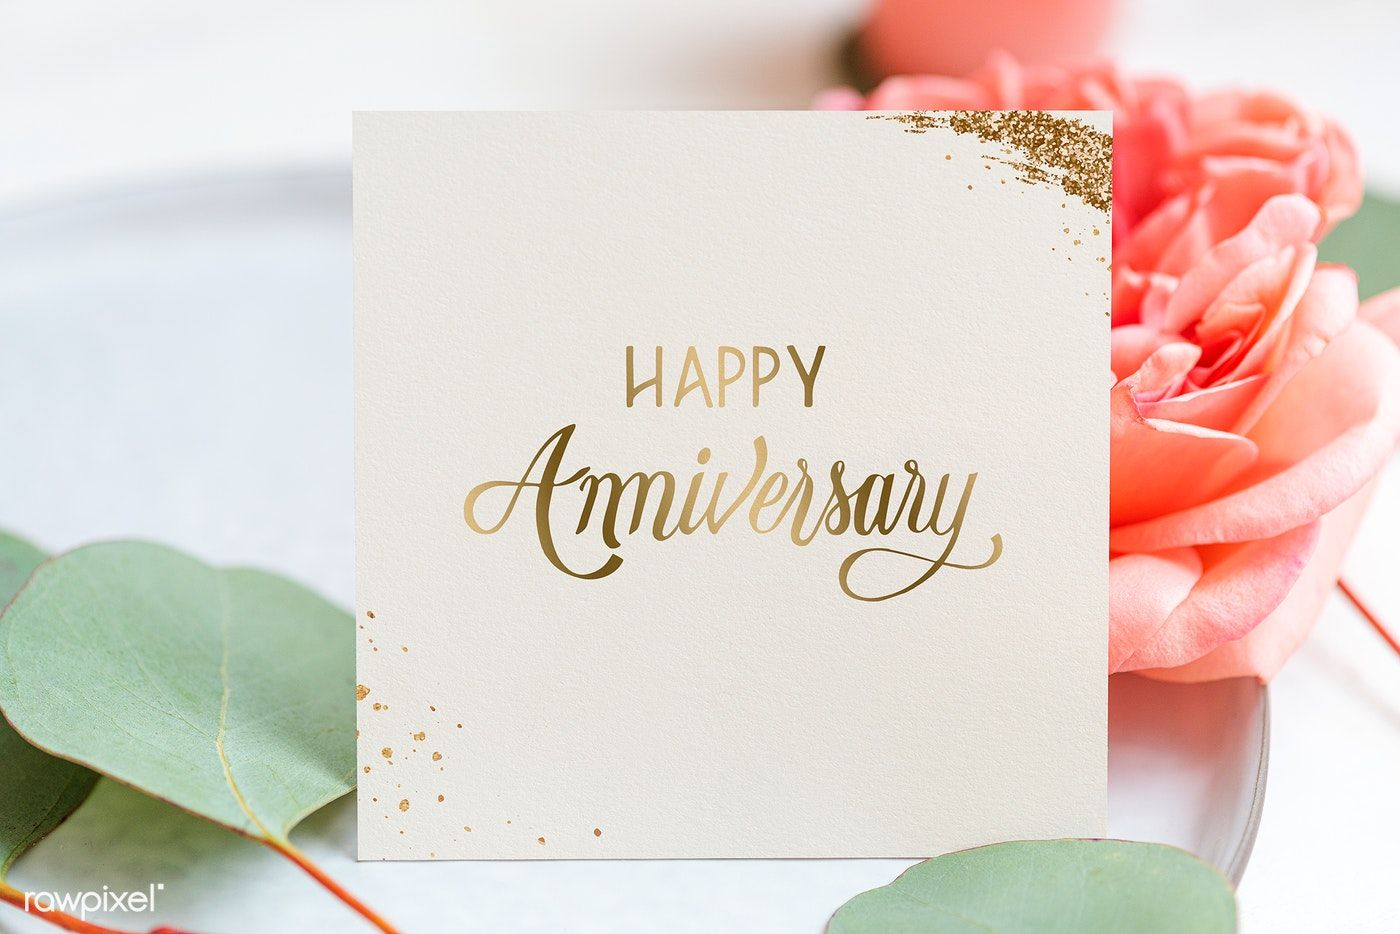 Download Premium Psd Of Floral Happy Anniversary Card Mockup 1212353 Happy Anniversary Cards Wedding Anniversary Greeting Cards Happy Wedding Anniversary Wishes